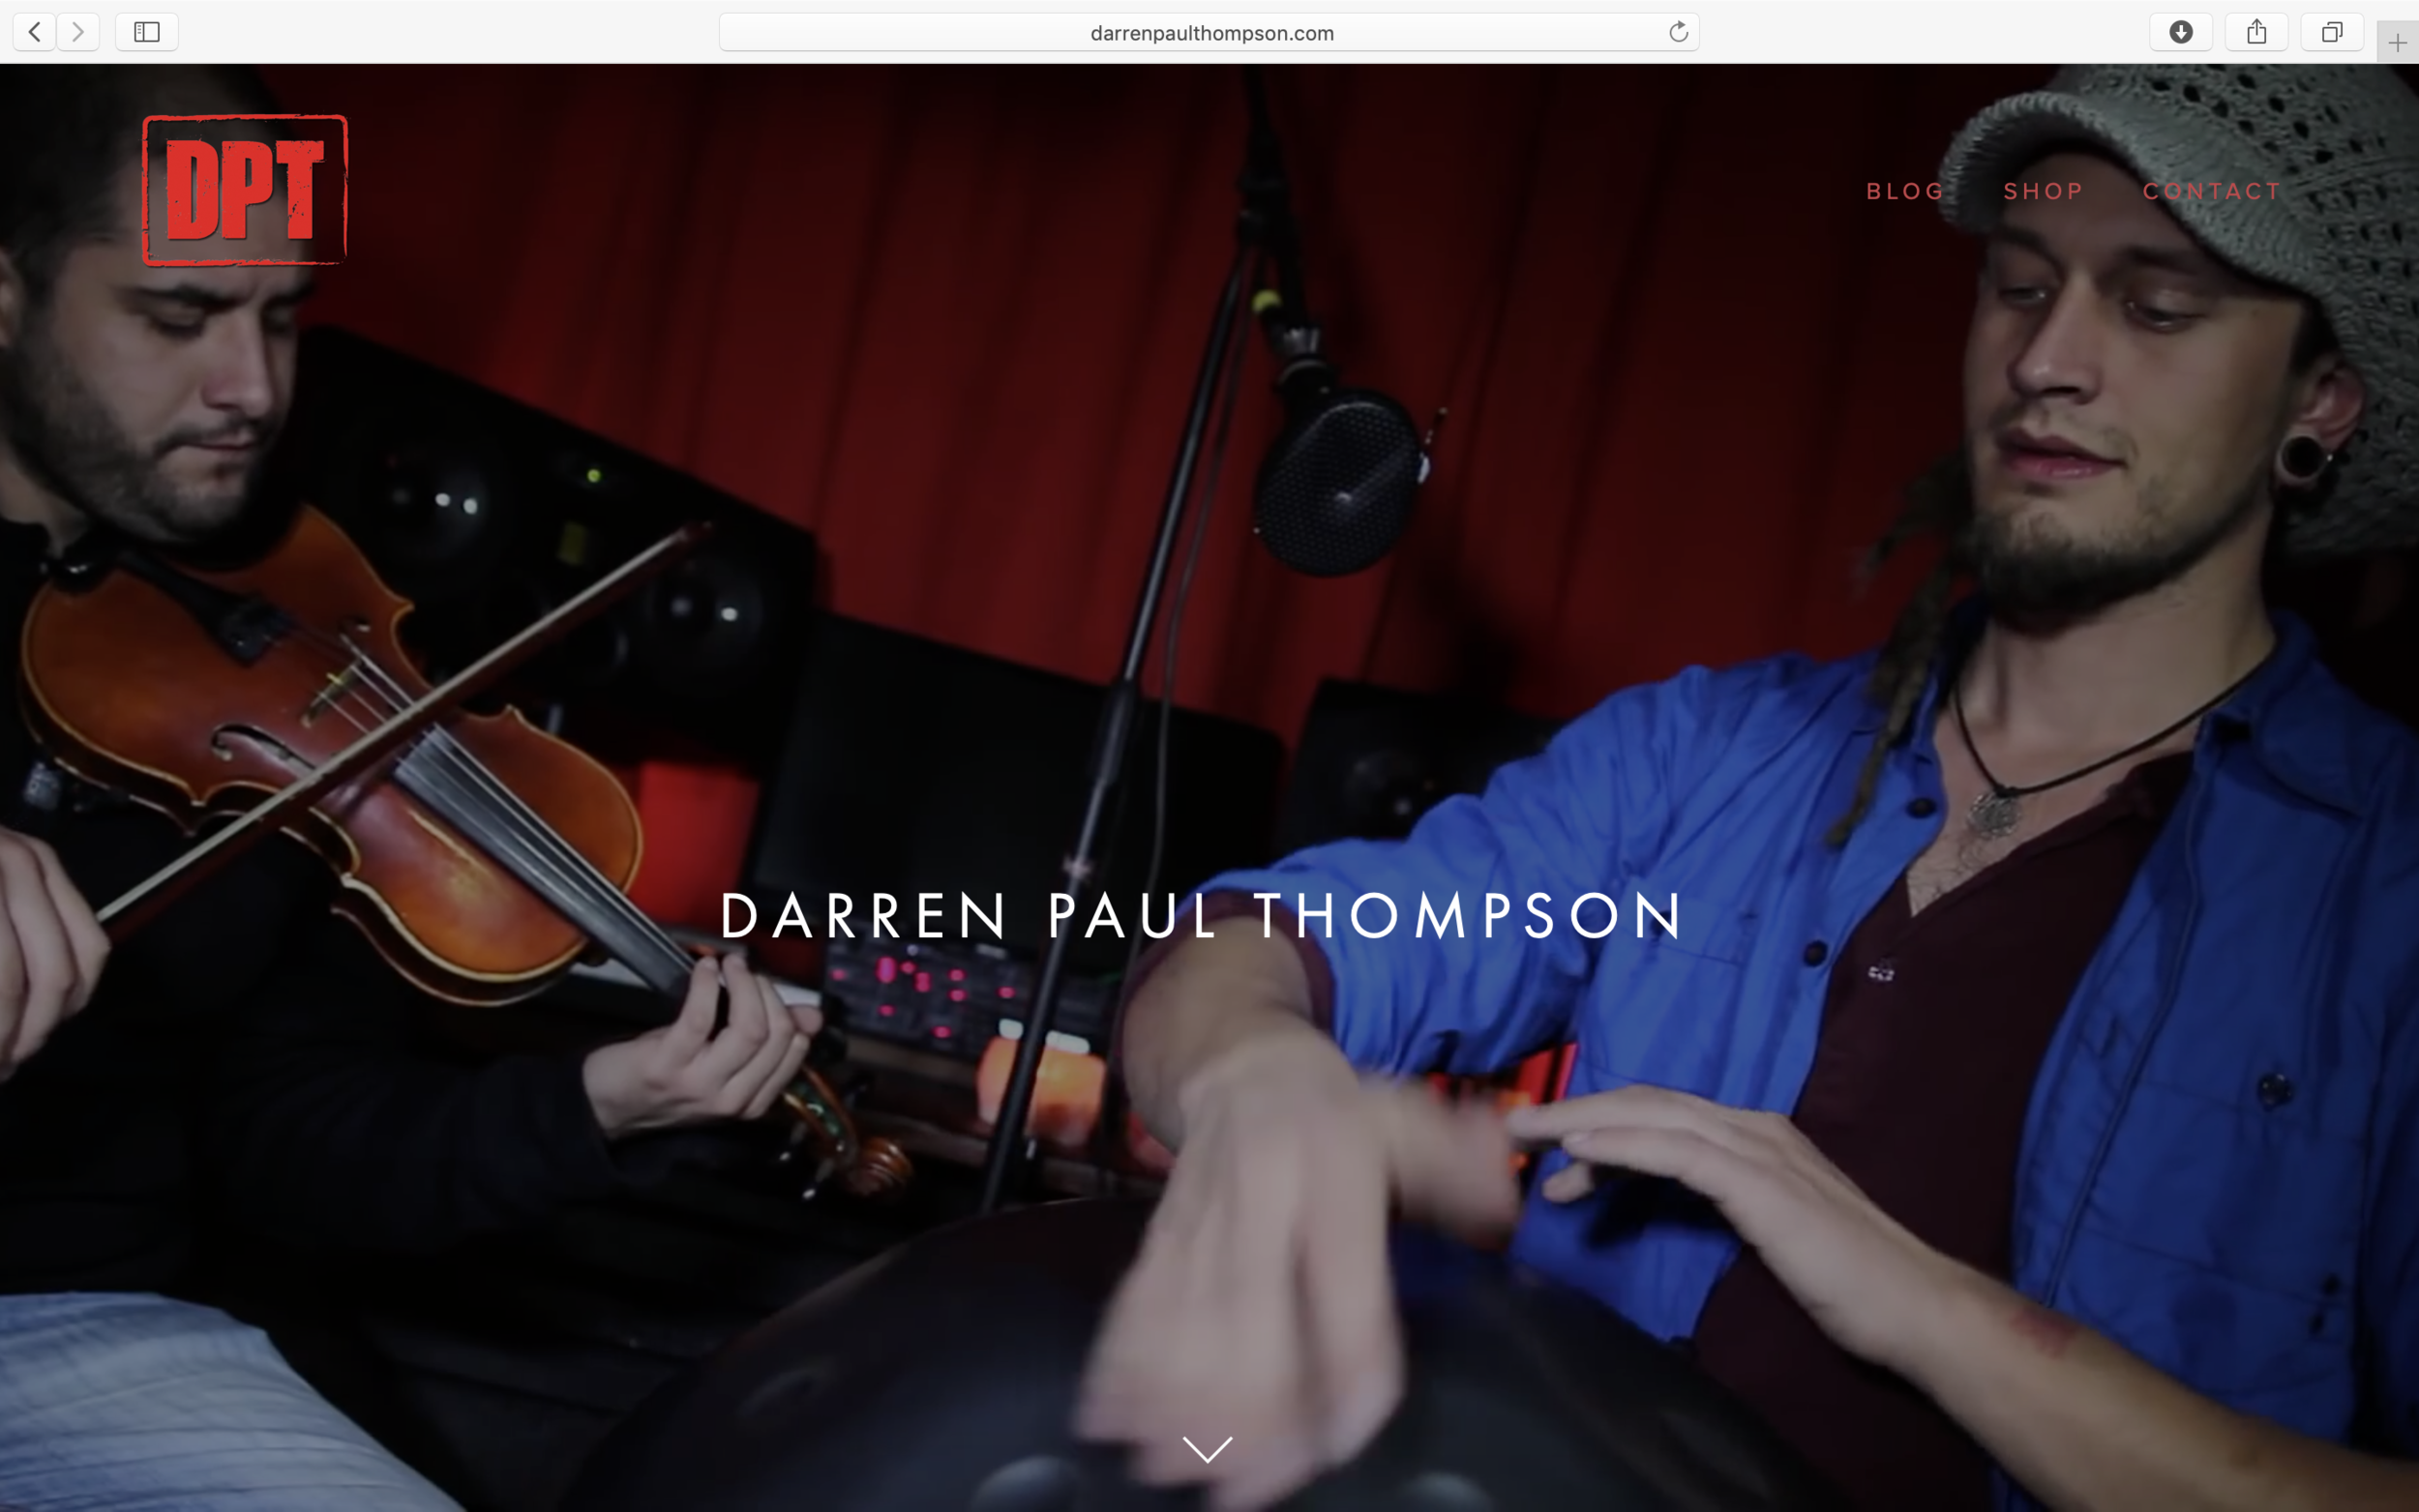 DarrenPaulThompson.com